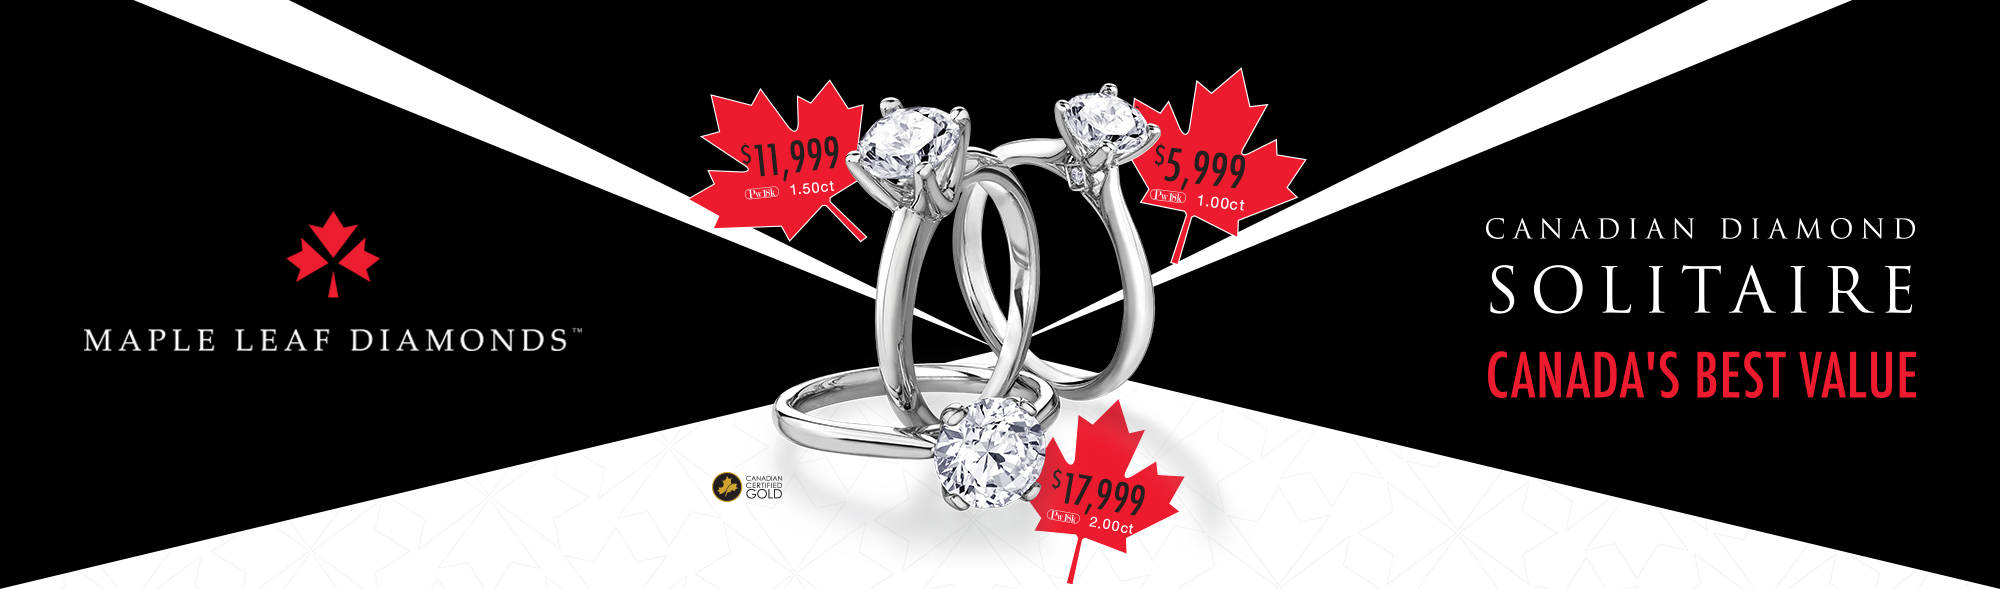 Maple Leaf Diamonds - Solitaire